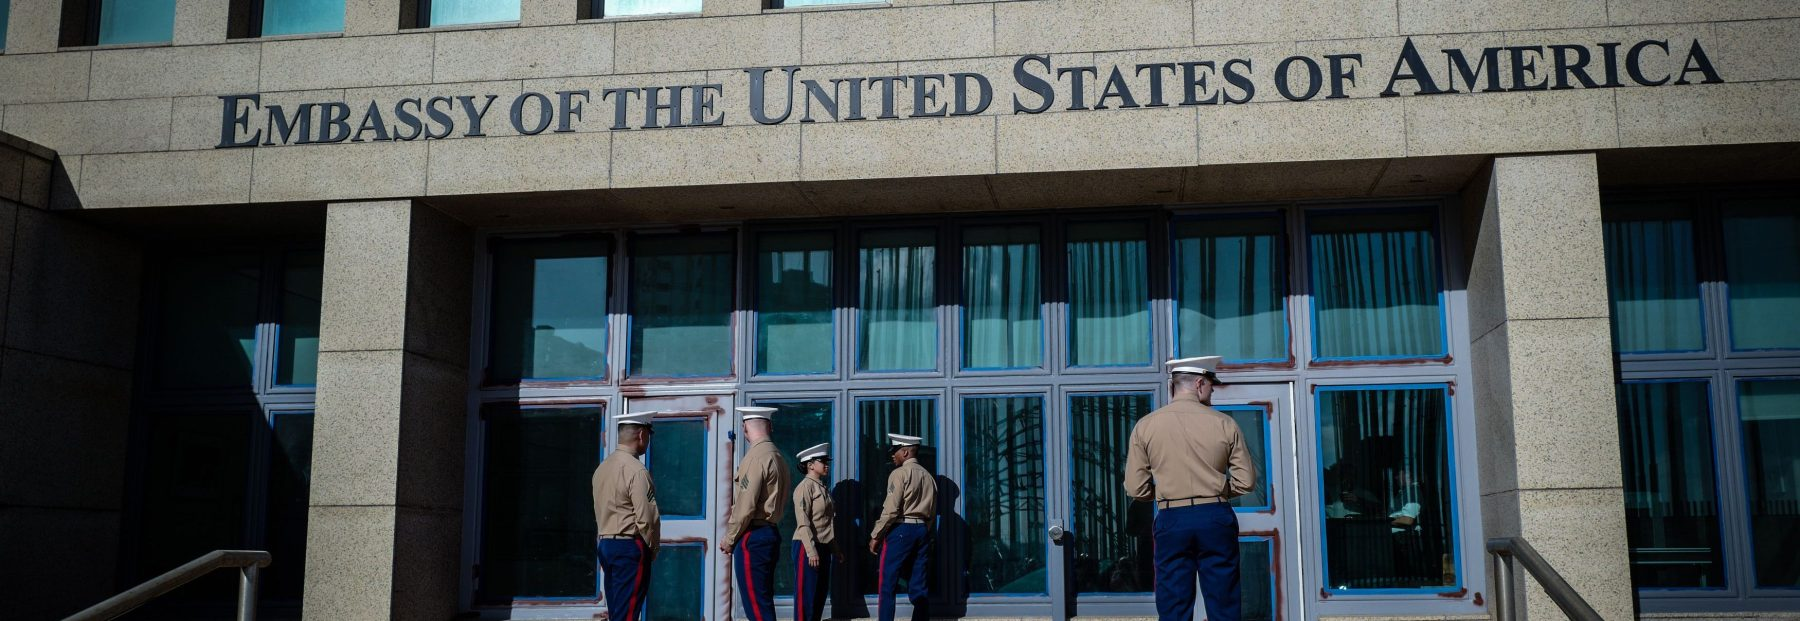 US Marines stand outside the Embassy of the United State of America in Havana, on February 21, 2018. (ADALBERTO ROQUE/AFP/Getty Images)